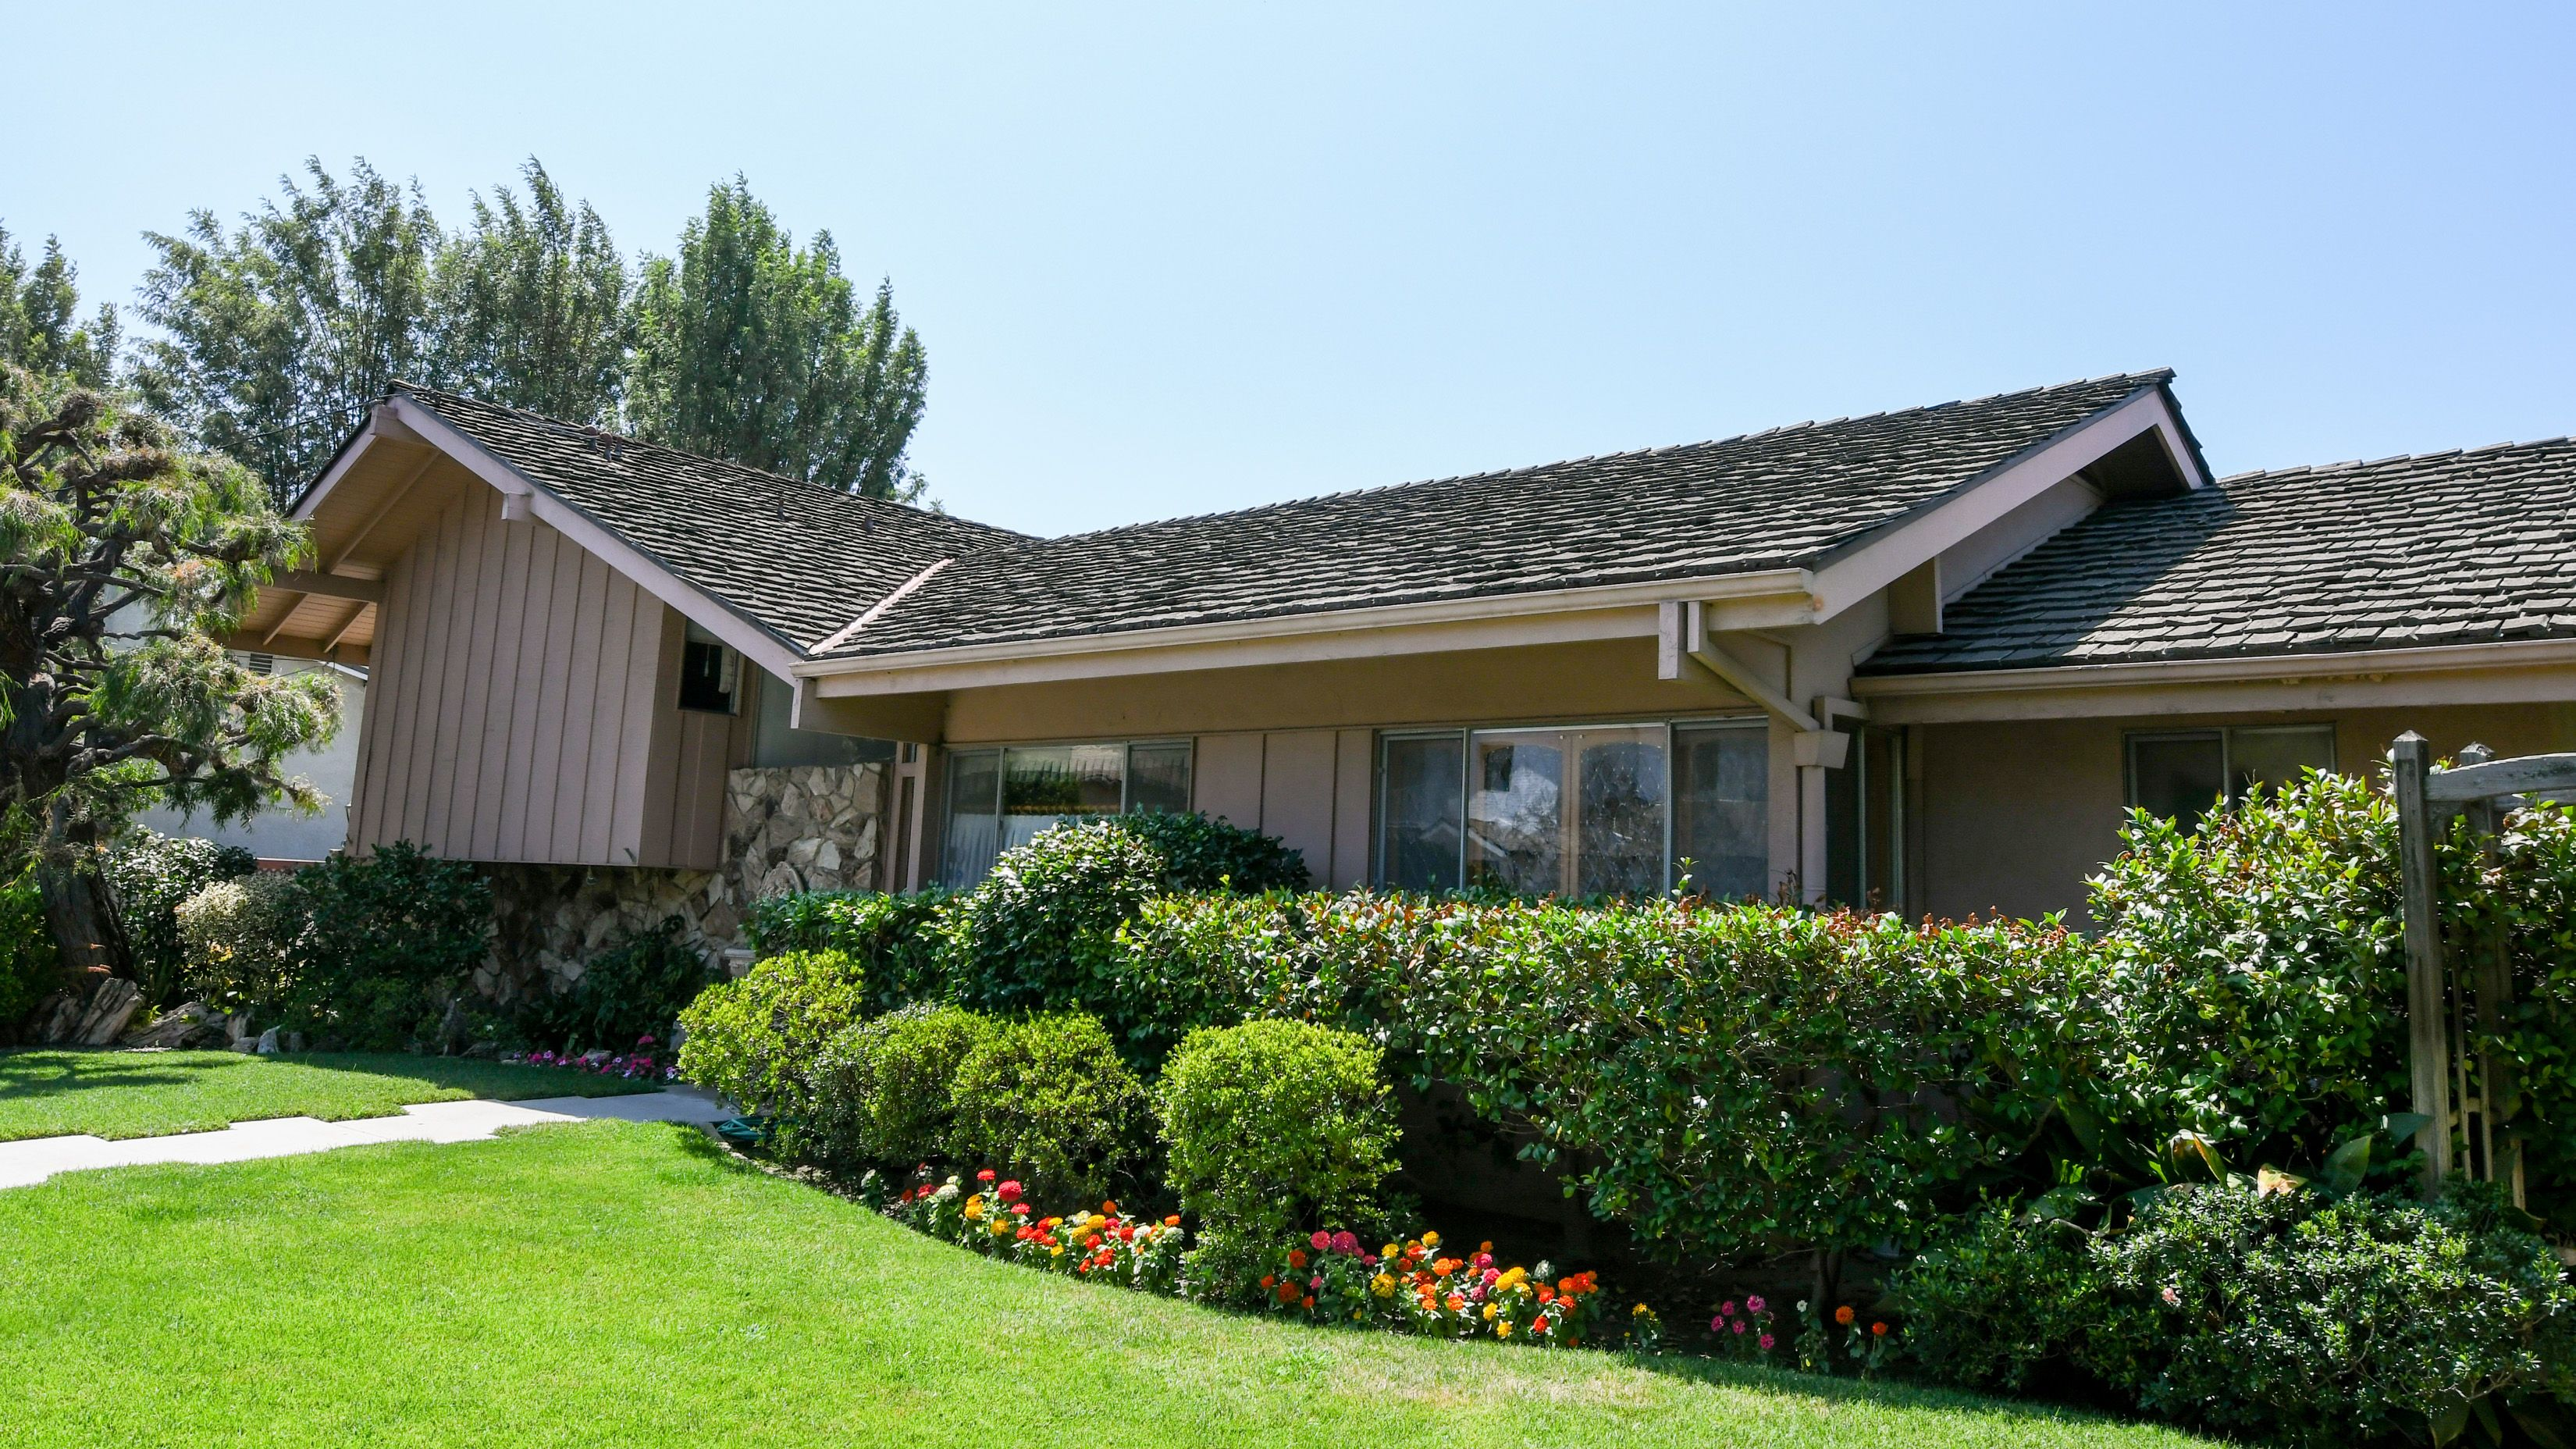 Hgtv just bought the house from the brady bunch